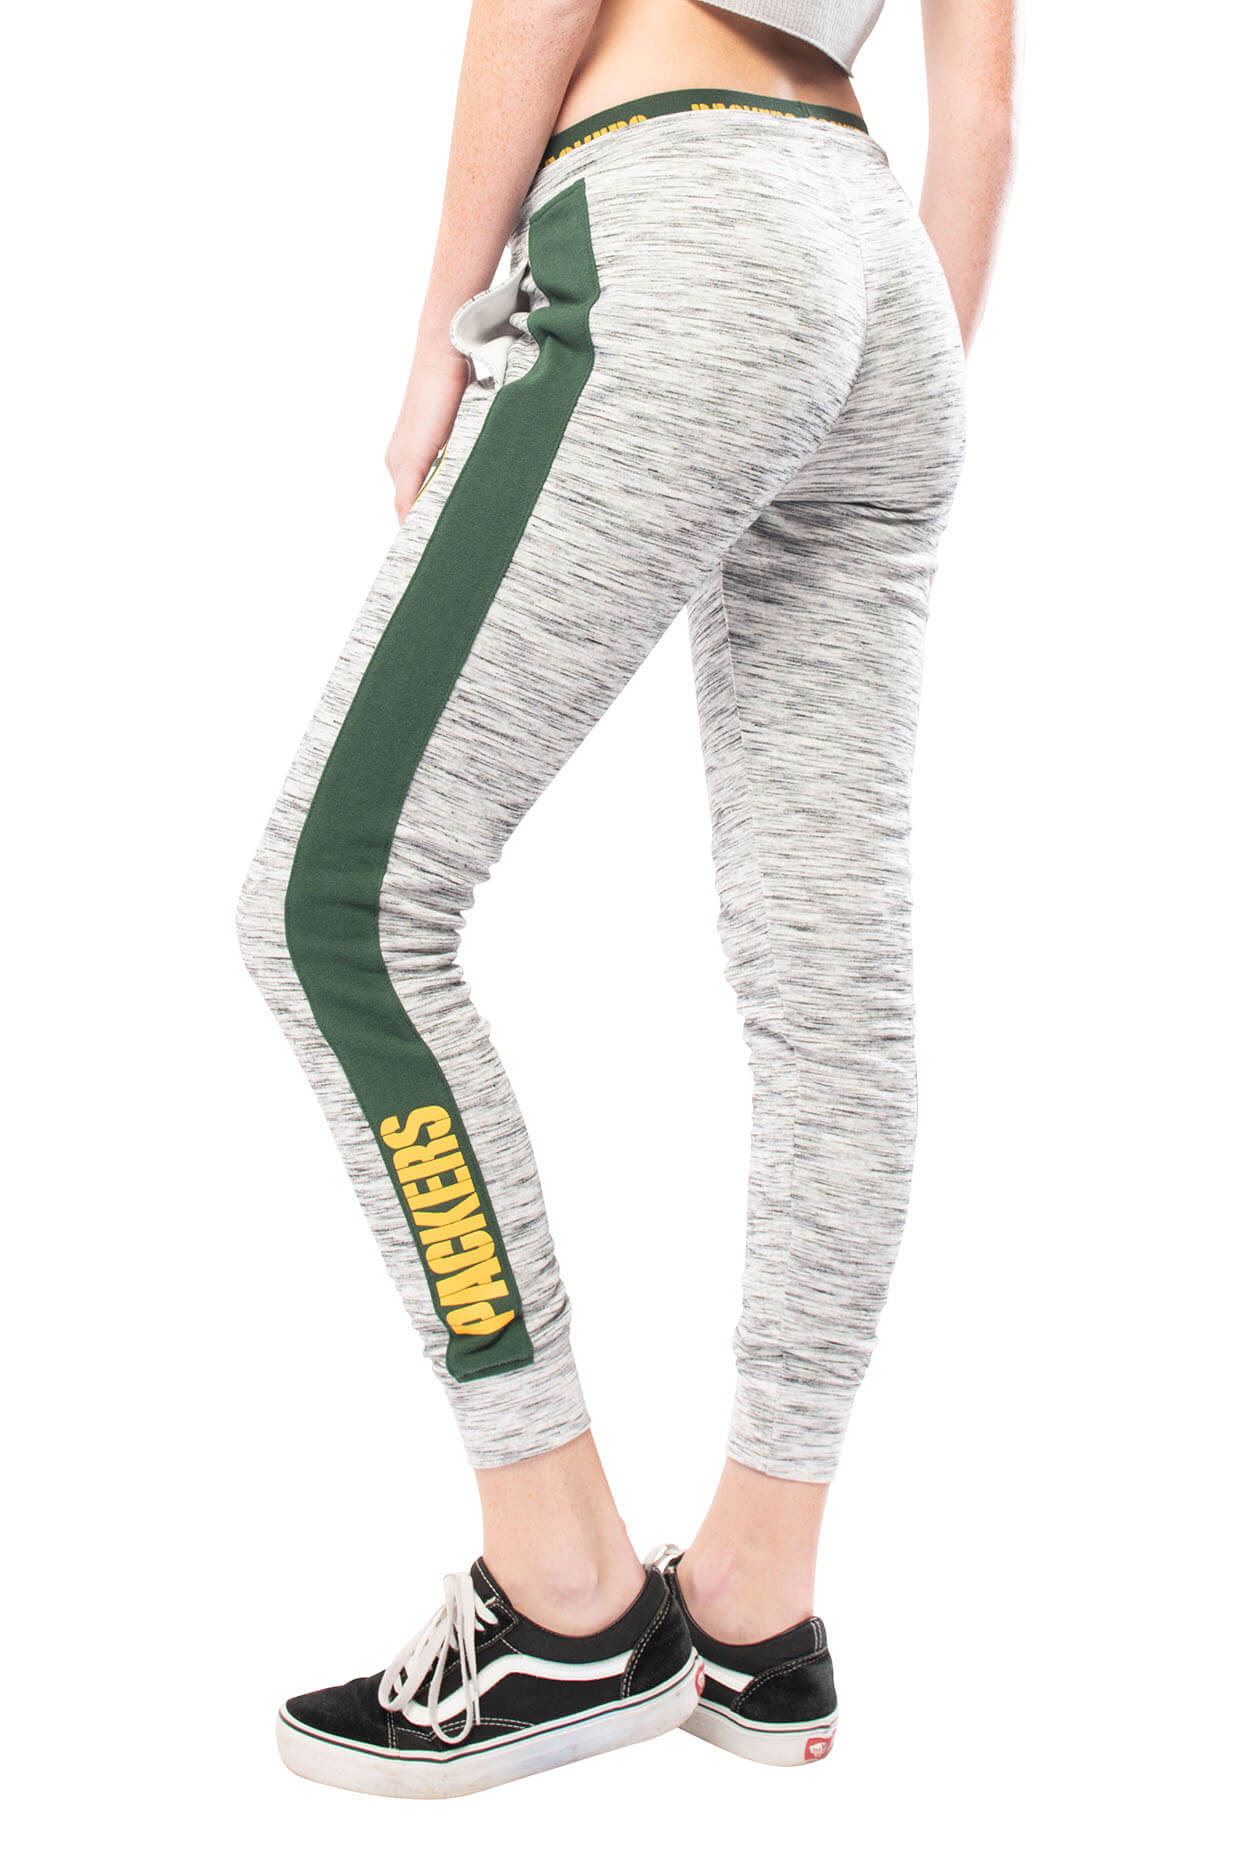 NFL Green Bay Packers Women's Basic Jogger|Green Bay Packers